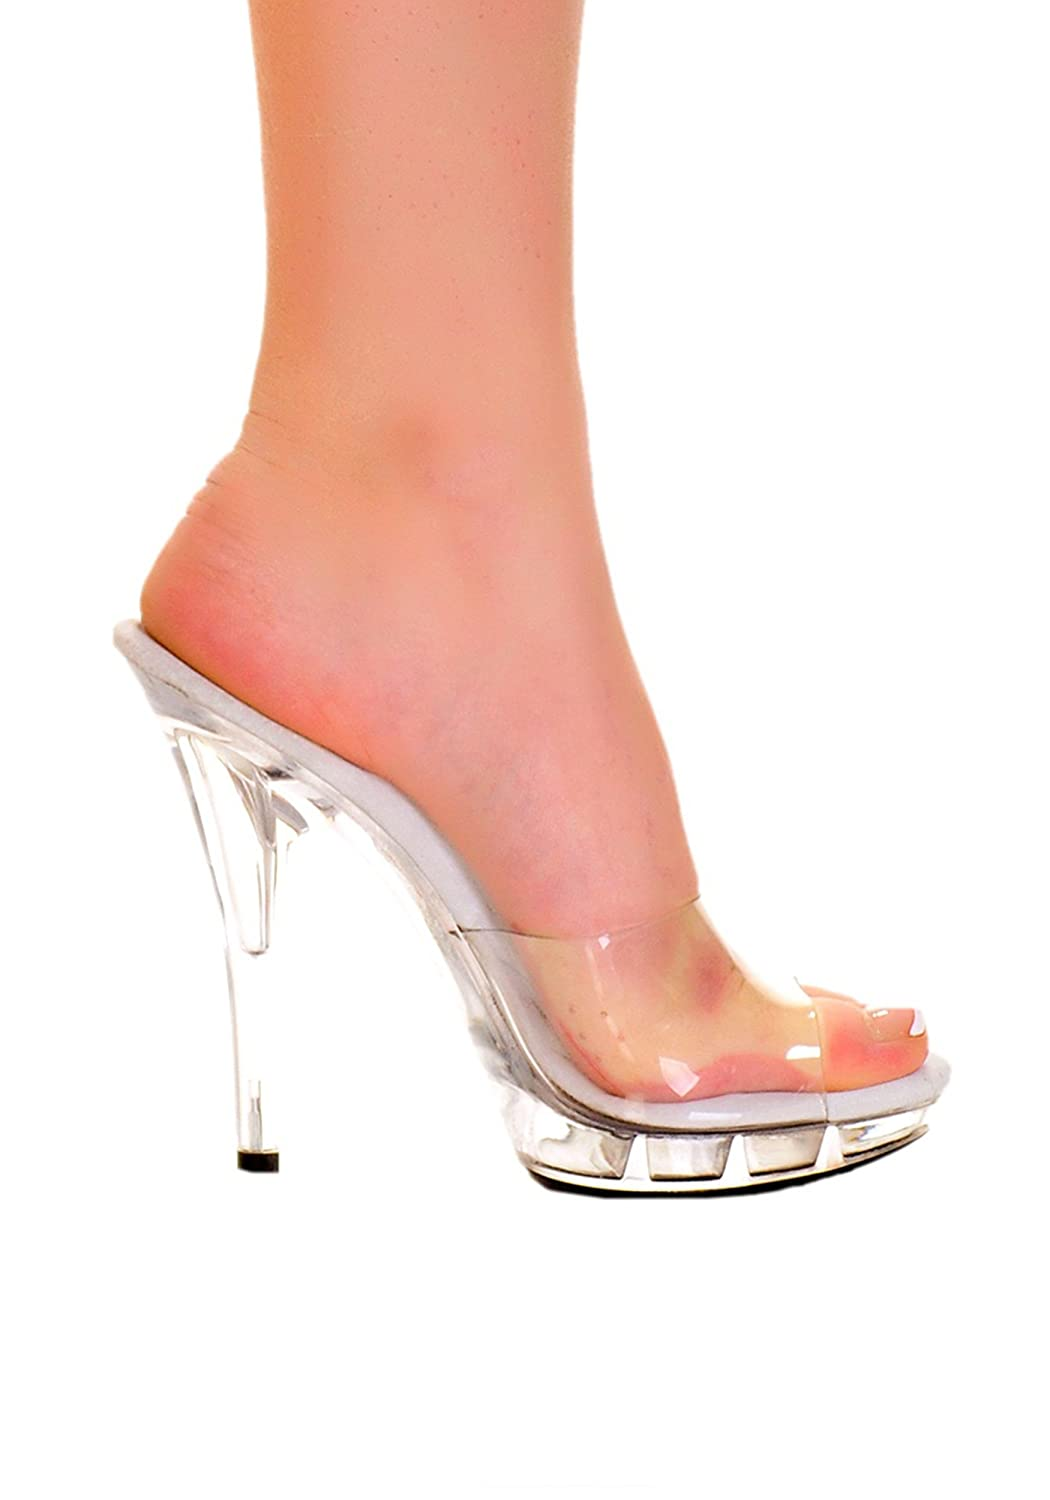 THE HIGHEST HEEL QUEST-11-RS Women's Fashion 5